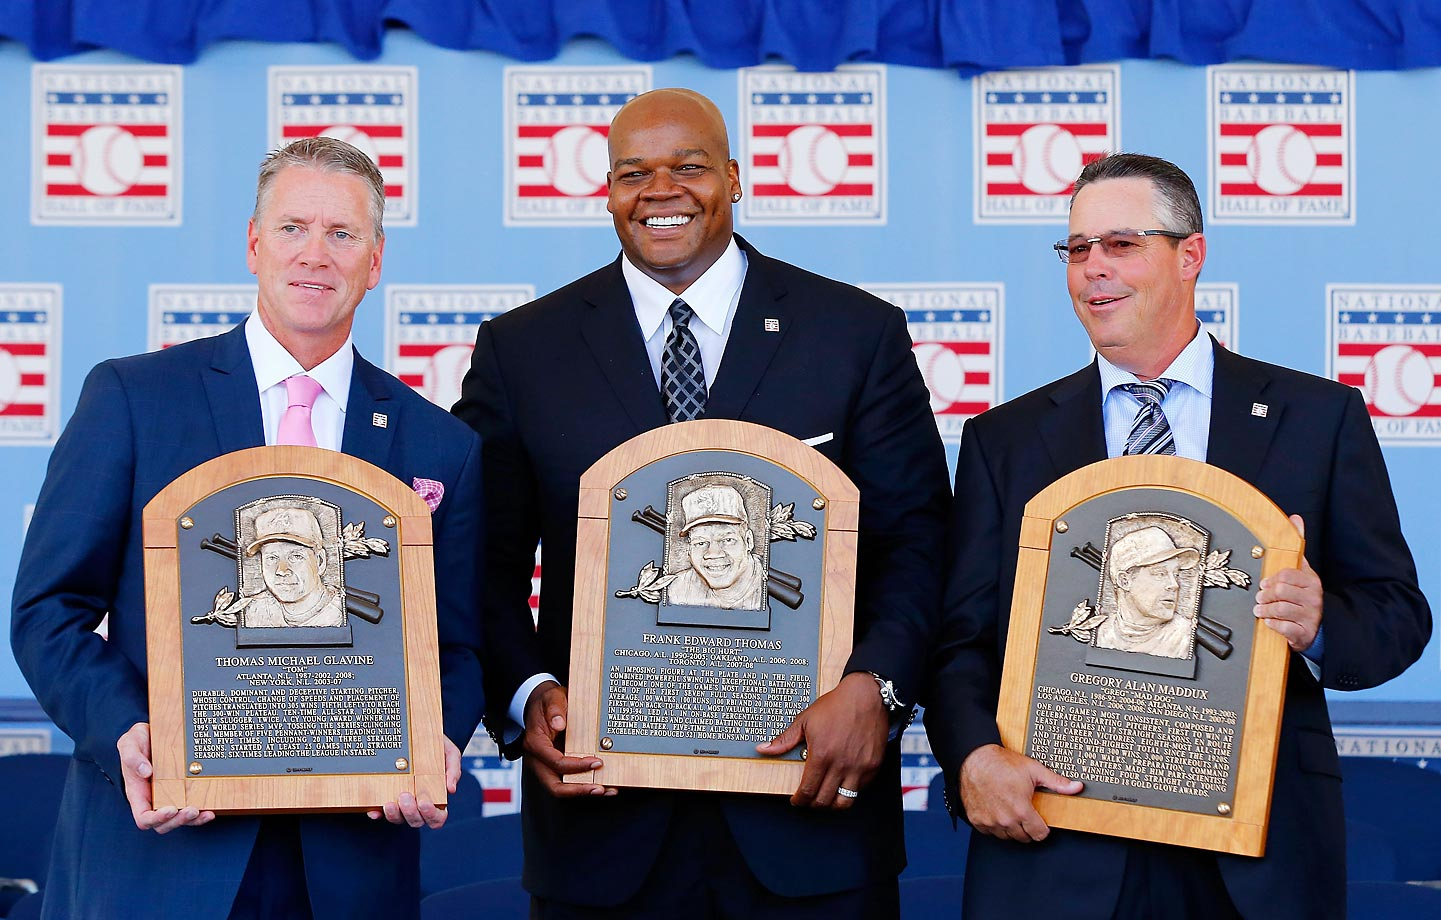 The three inductees into the Baseball Hall of Fame, Tom Glavine (left), Frank Thomas (middle) and Greg Maddux (right), were all smiles after the ceremony in Cooperstown, N.Y. on July 27, 2014. Glavine was a two-time National League Cy Young award winner, Thomas was a home run machine, hitting 521 over the course of his career and Maddux won an impressive 355 games during his 23 years in the Majors.